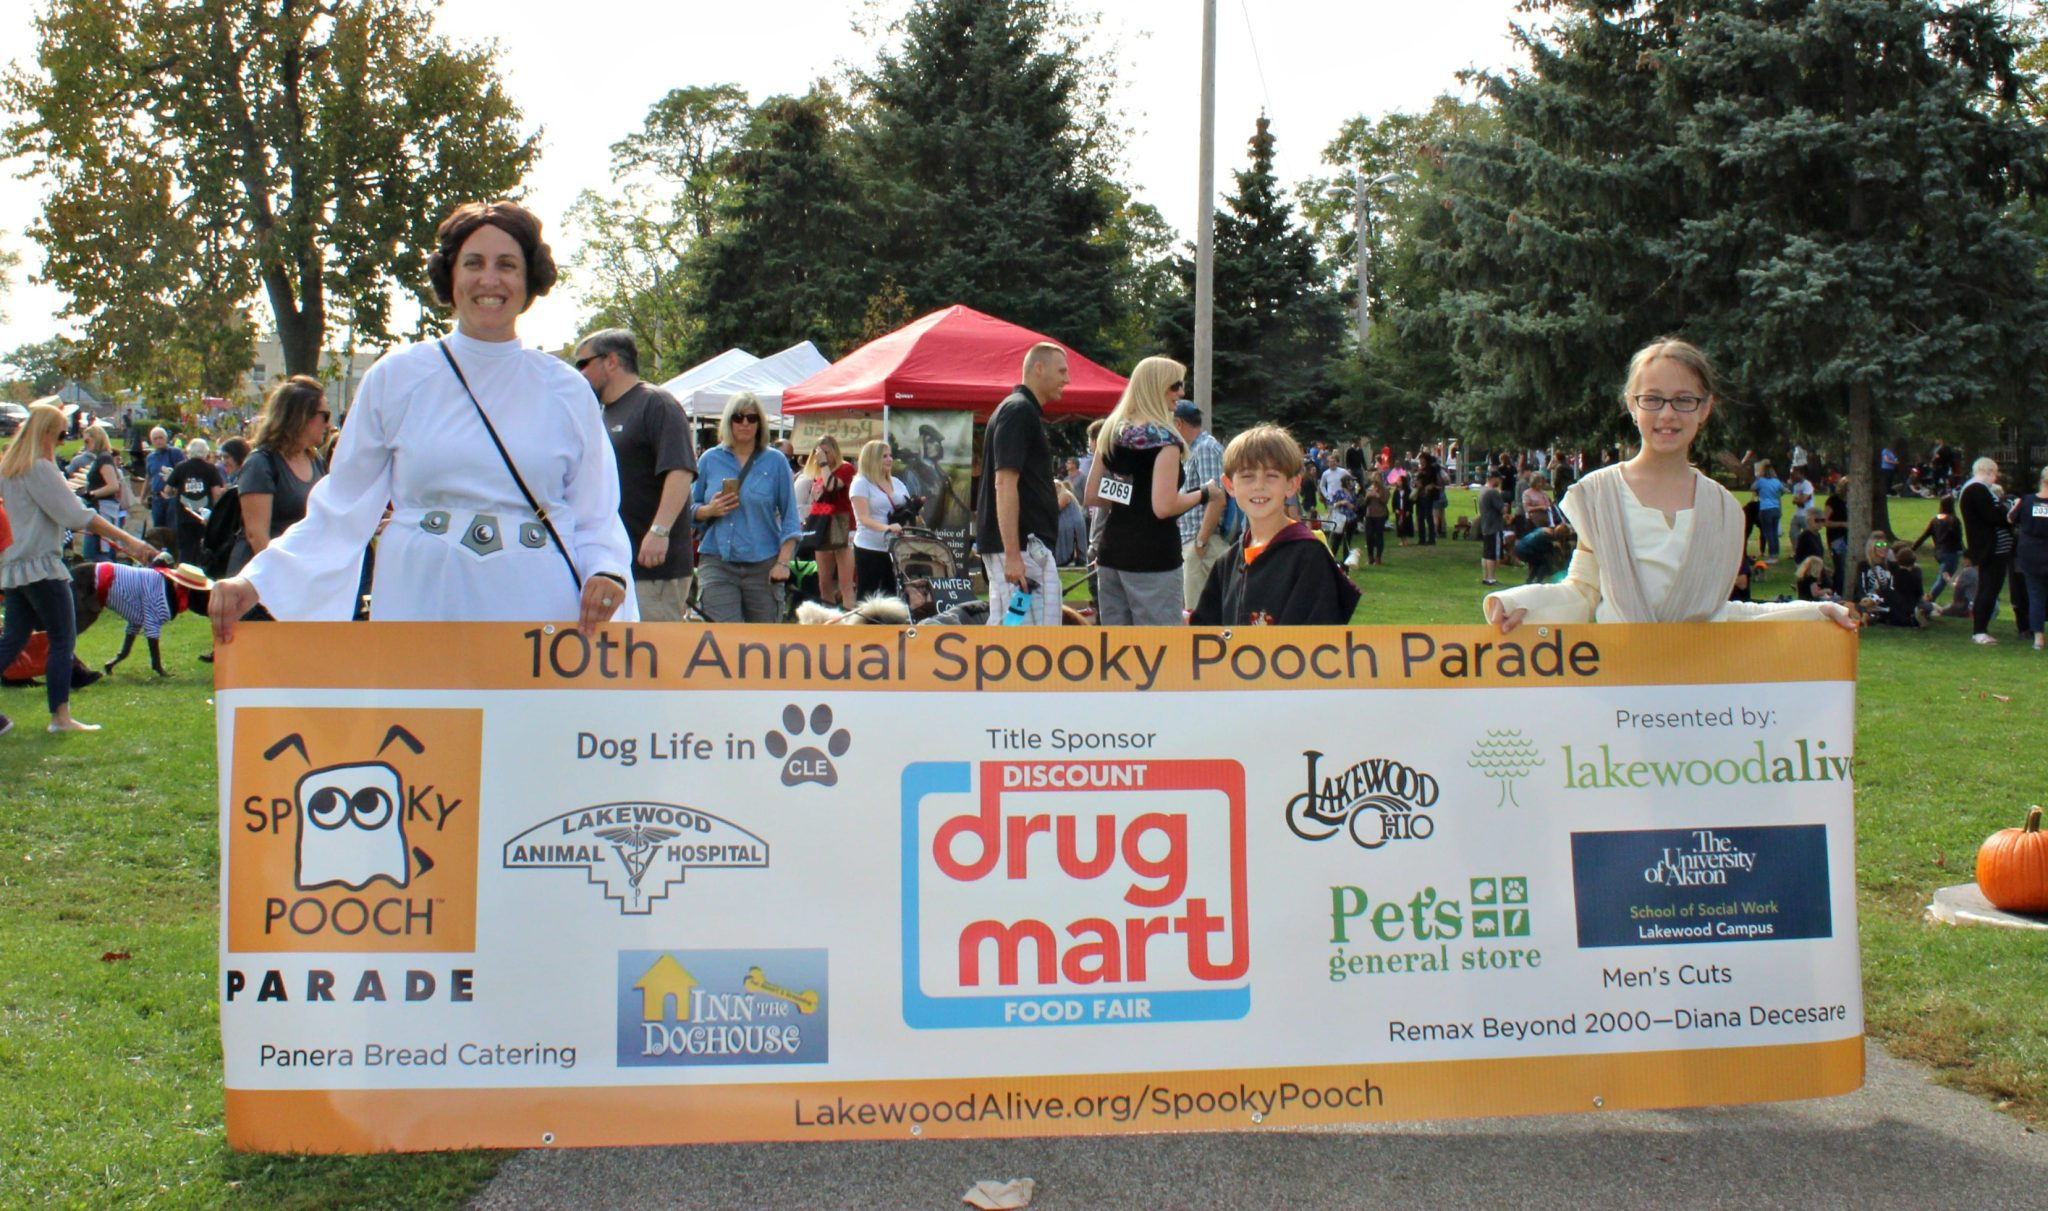 LakewoodAlive Spooky Pooch Parade